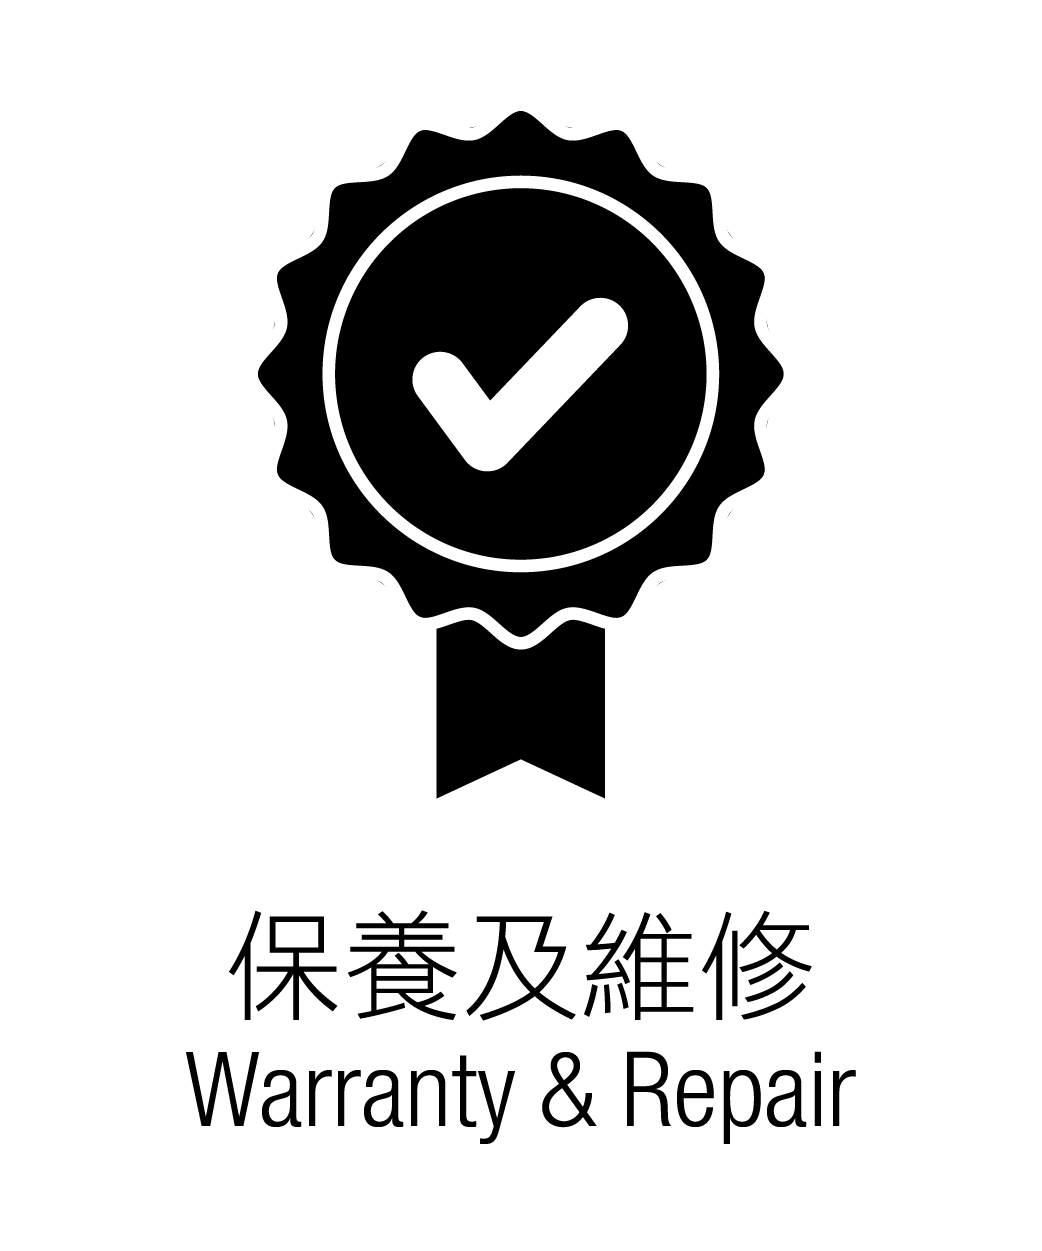 website-icon_warranty.jpg